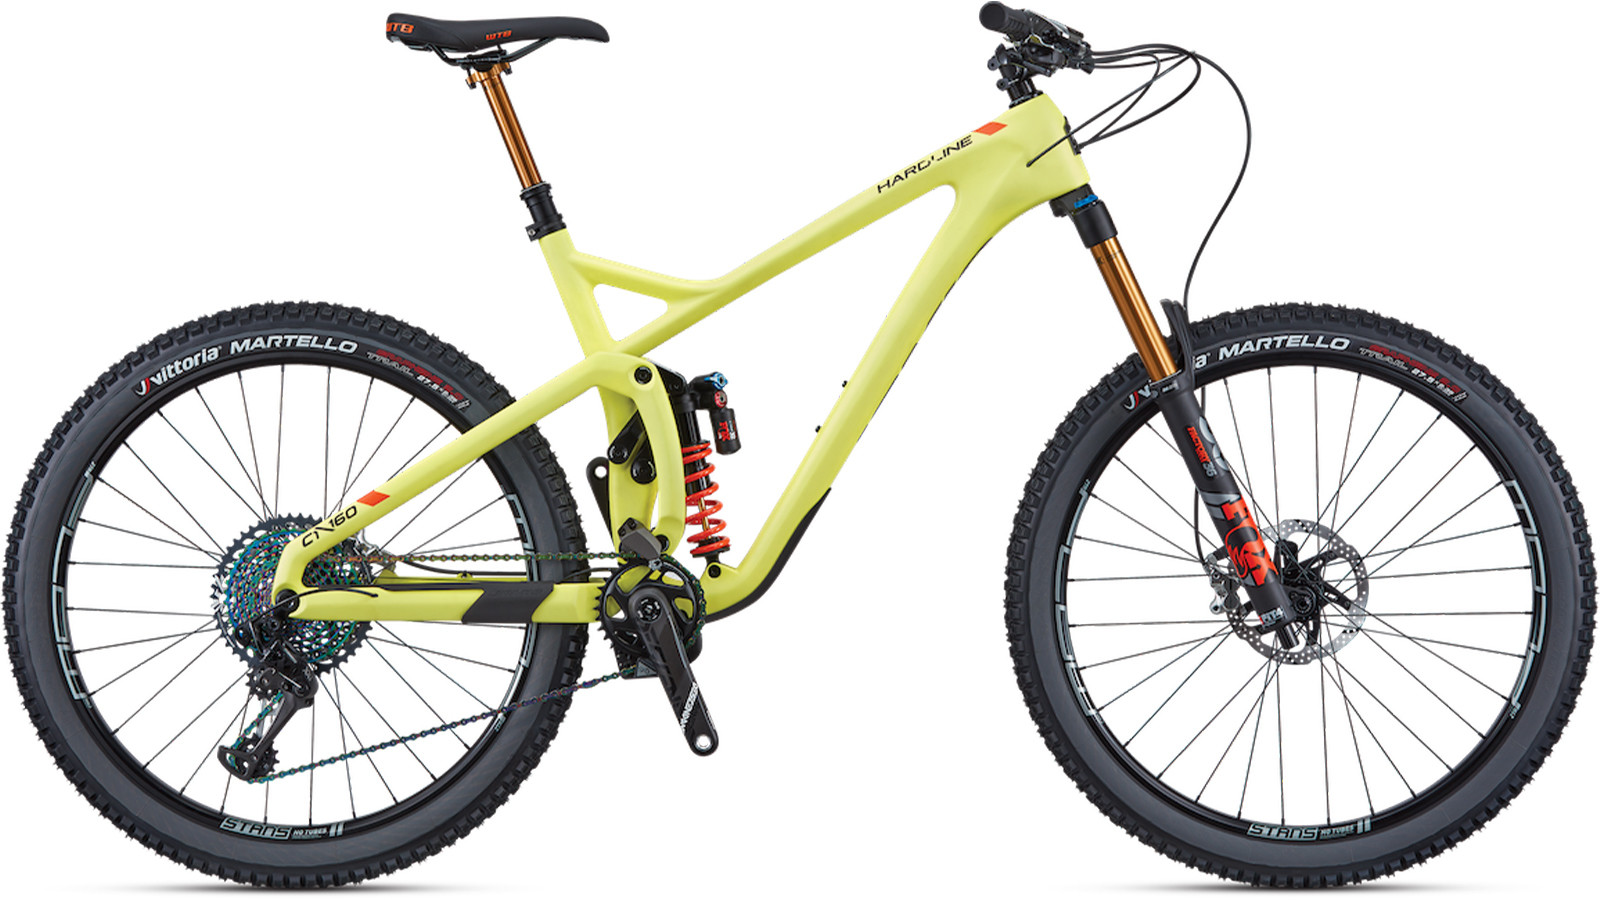 Jamis Launches 2020 3VO Bikes Now With Top-Spec Carbon Offerings